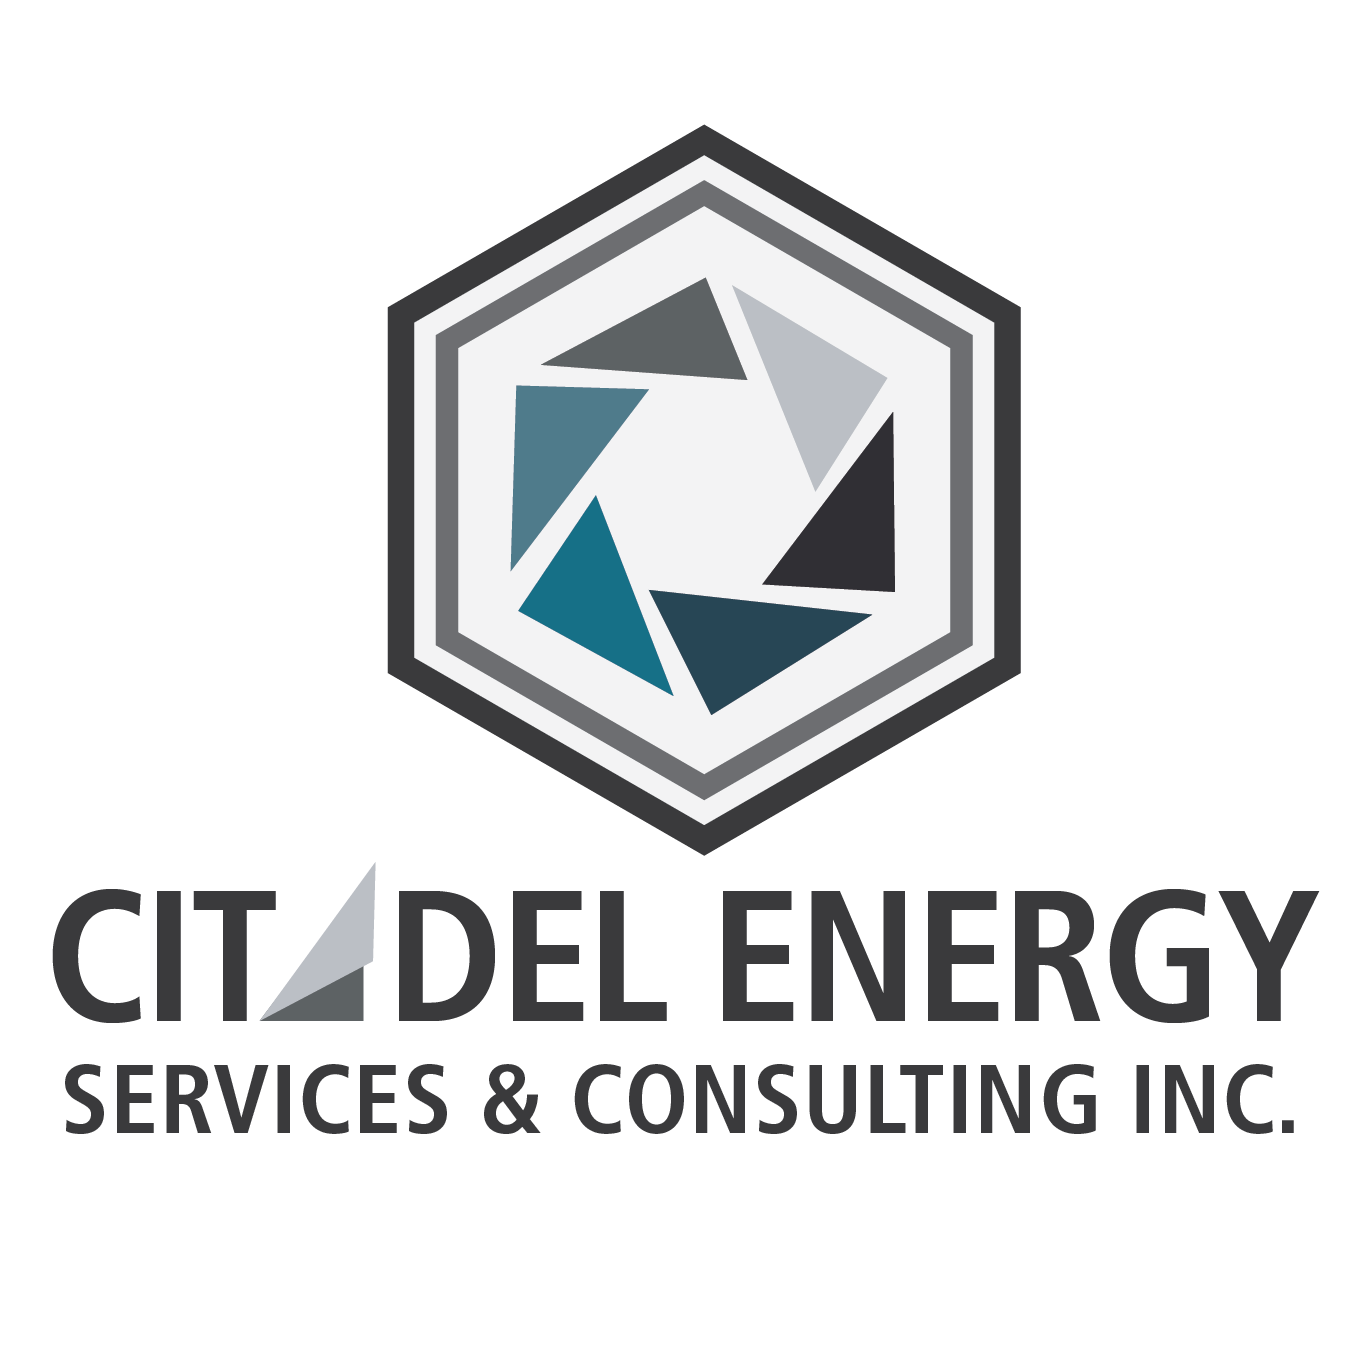 Citadel Energy Services and Consulting Inc_Citadel Energy